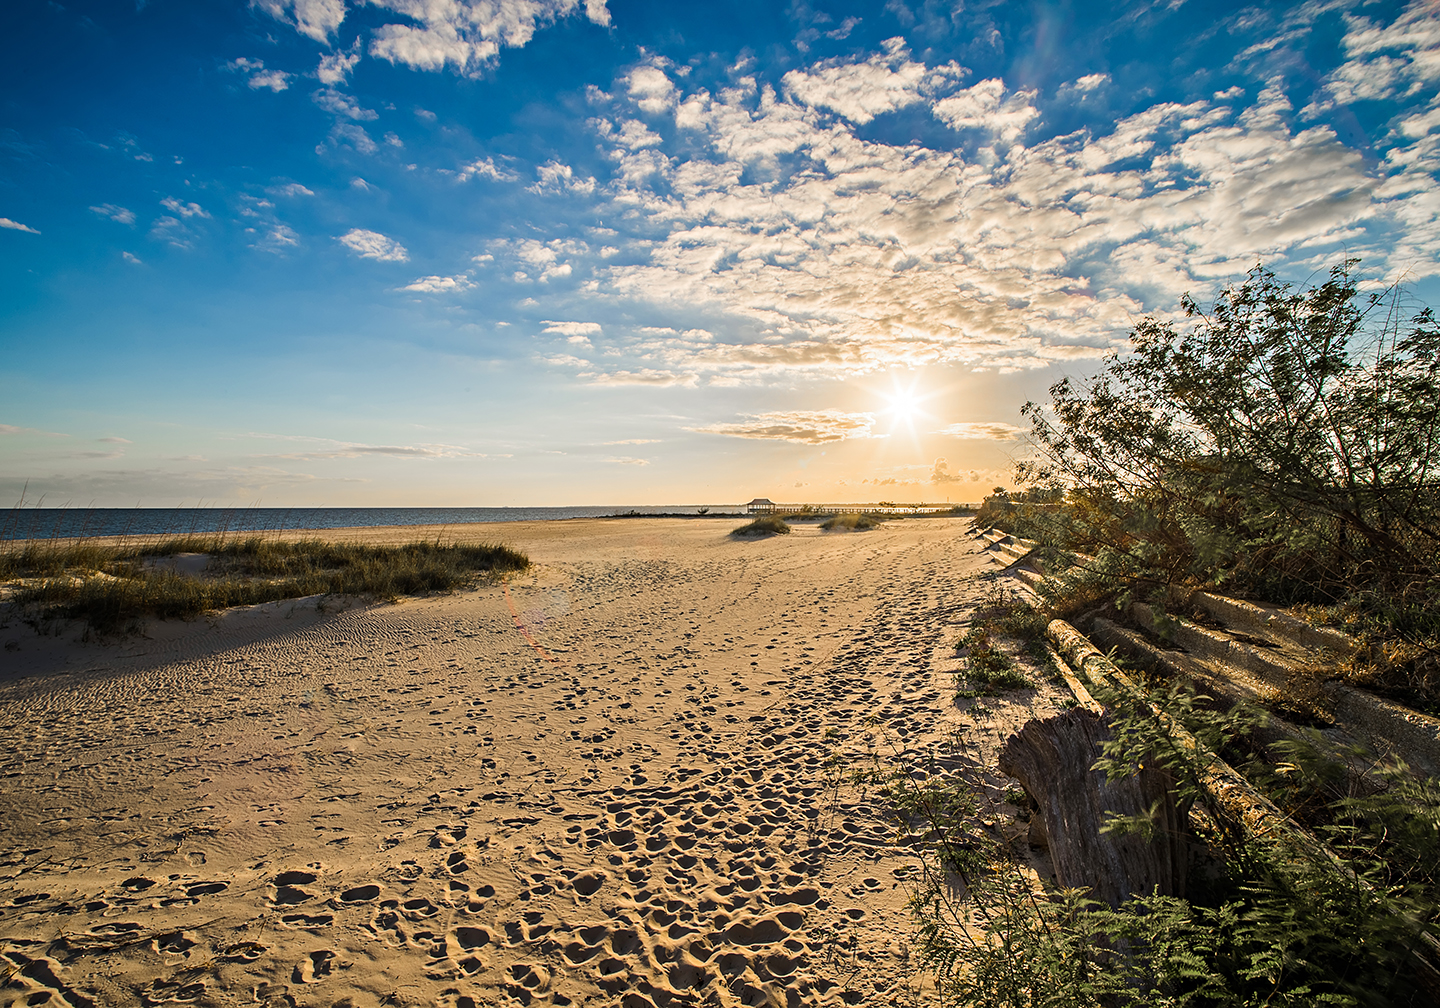 A yellow sandy beach in Long Beach, MS with blue sky and a setting sun in the distance.